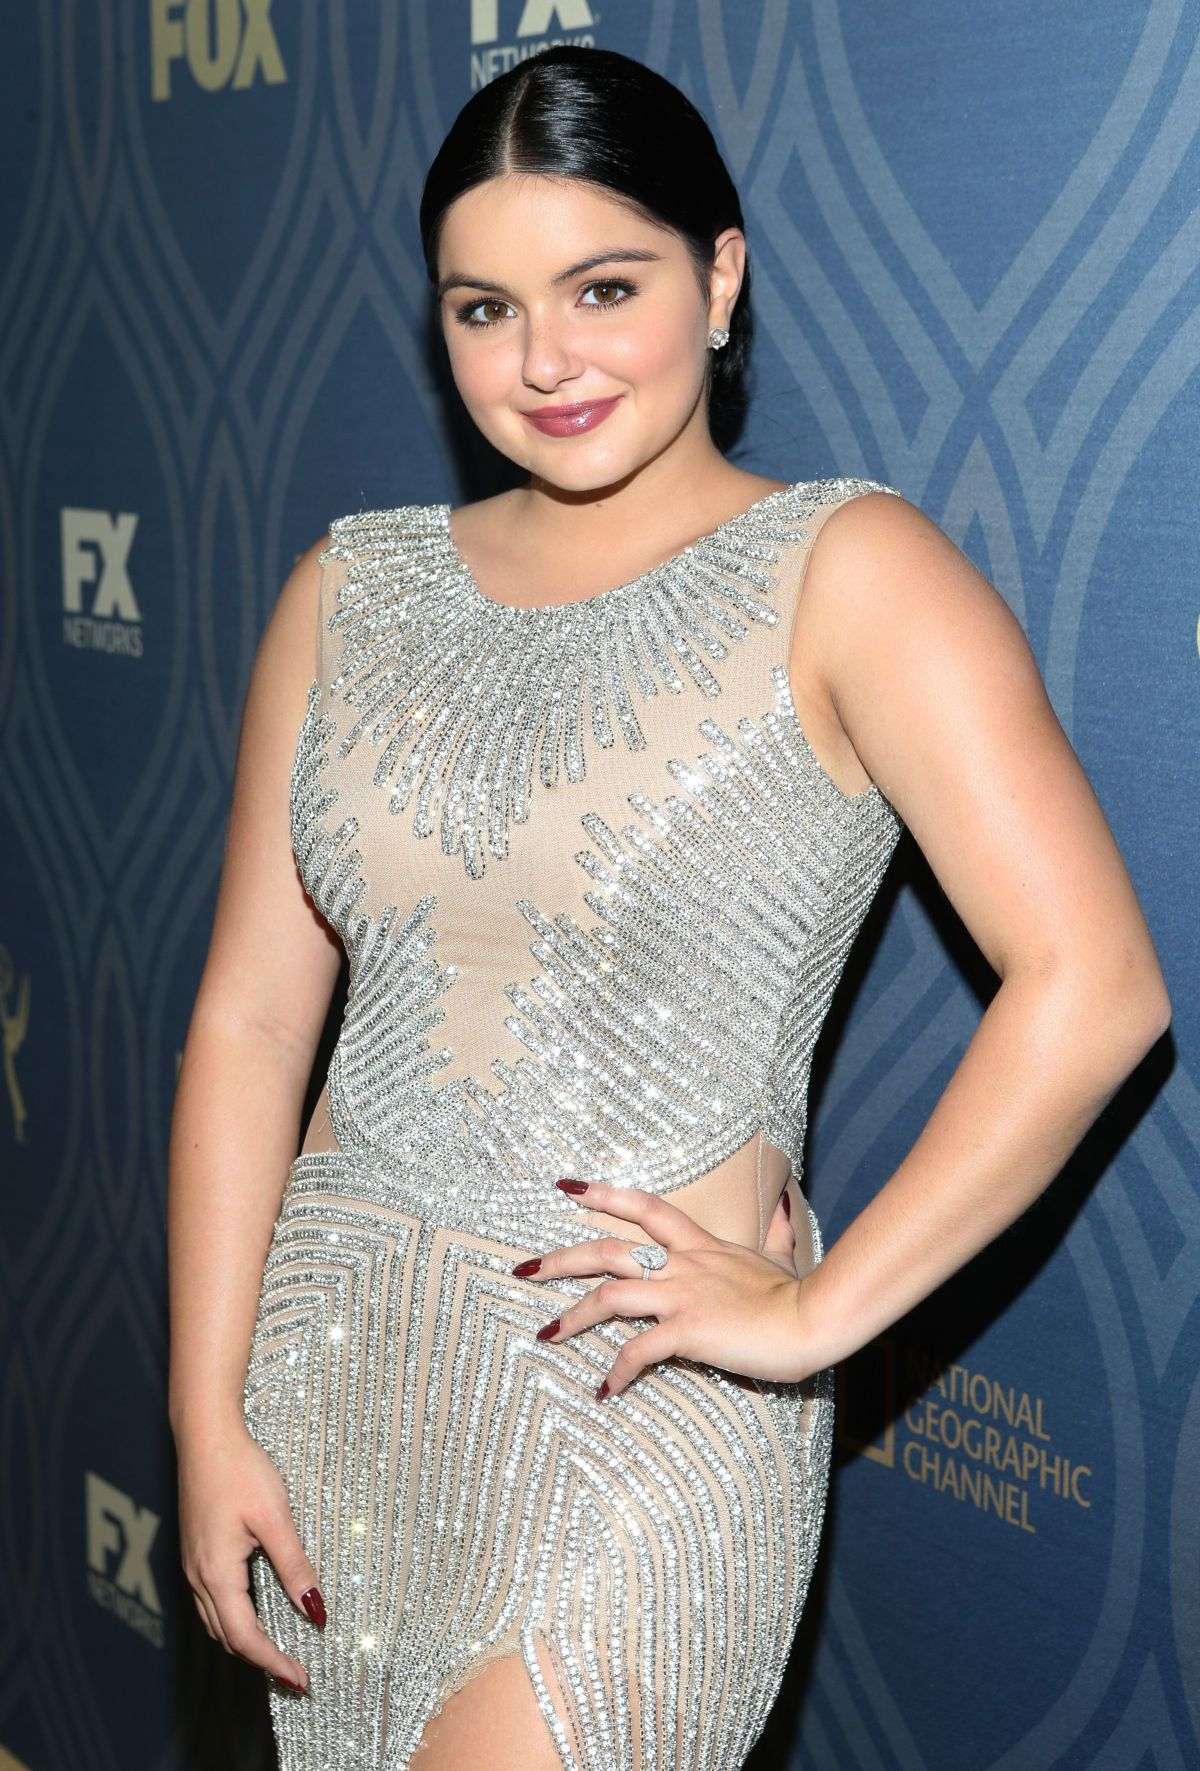 ARIEL WINTER at Fox Emmy After Party in Los Angeles 09/18/2016